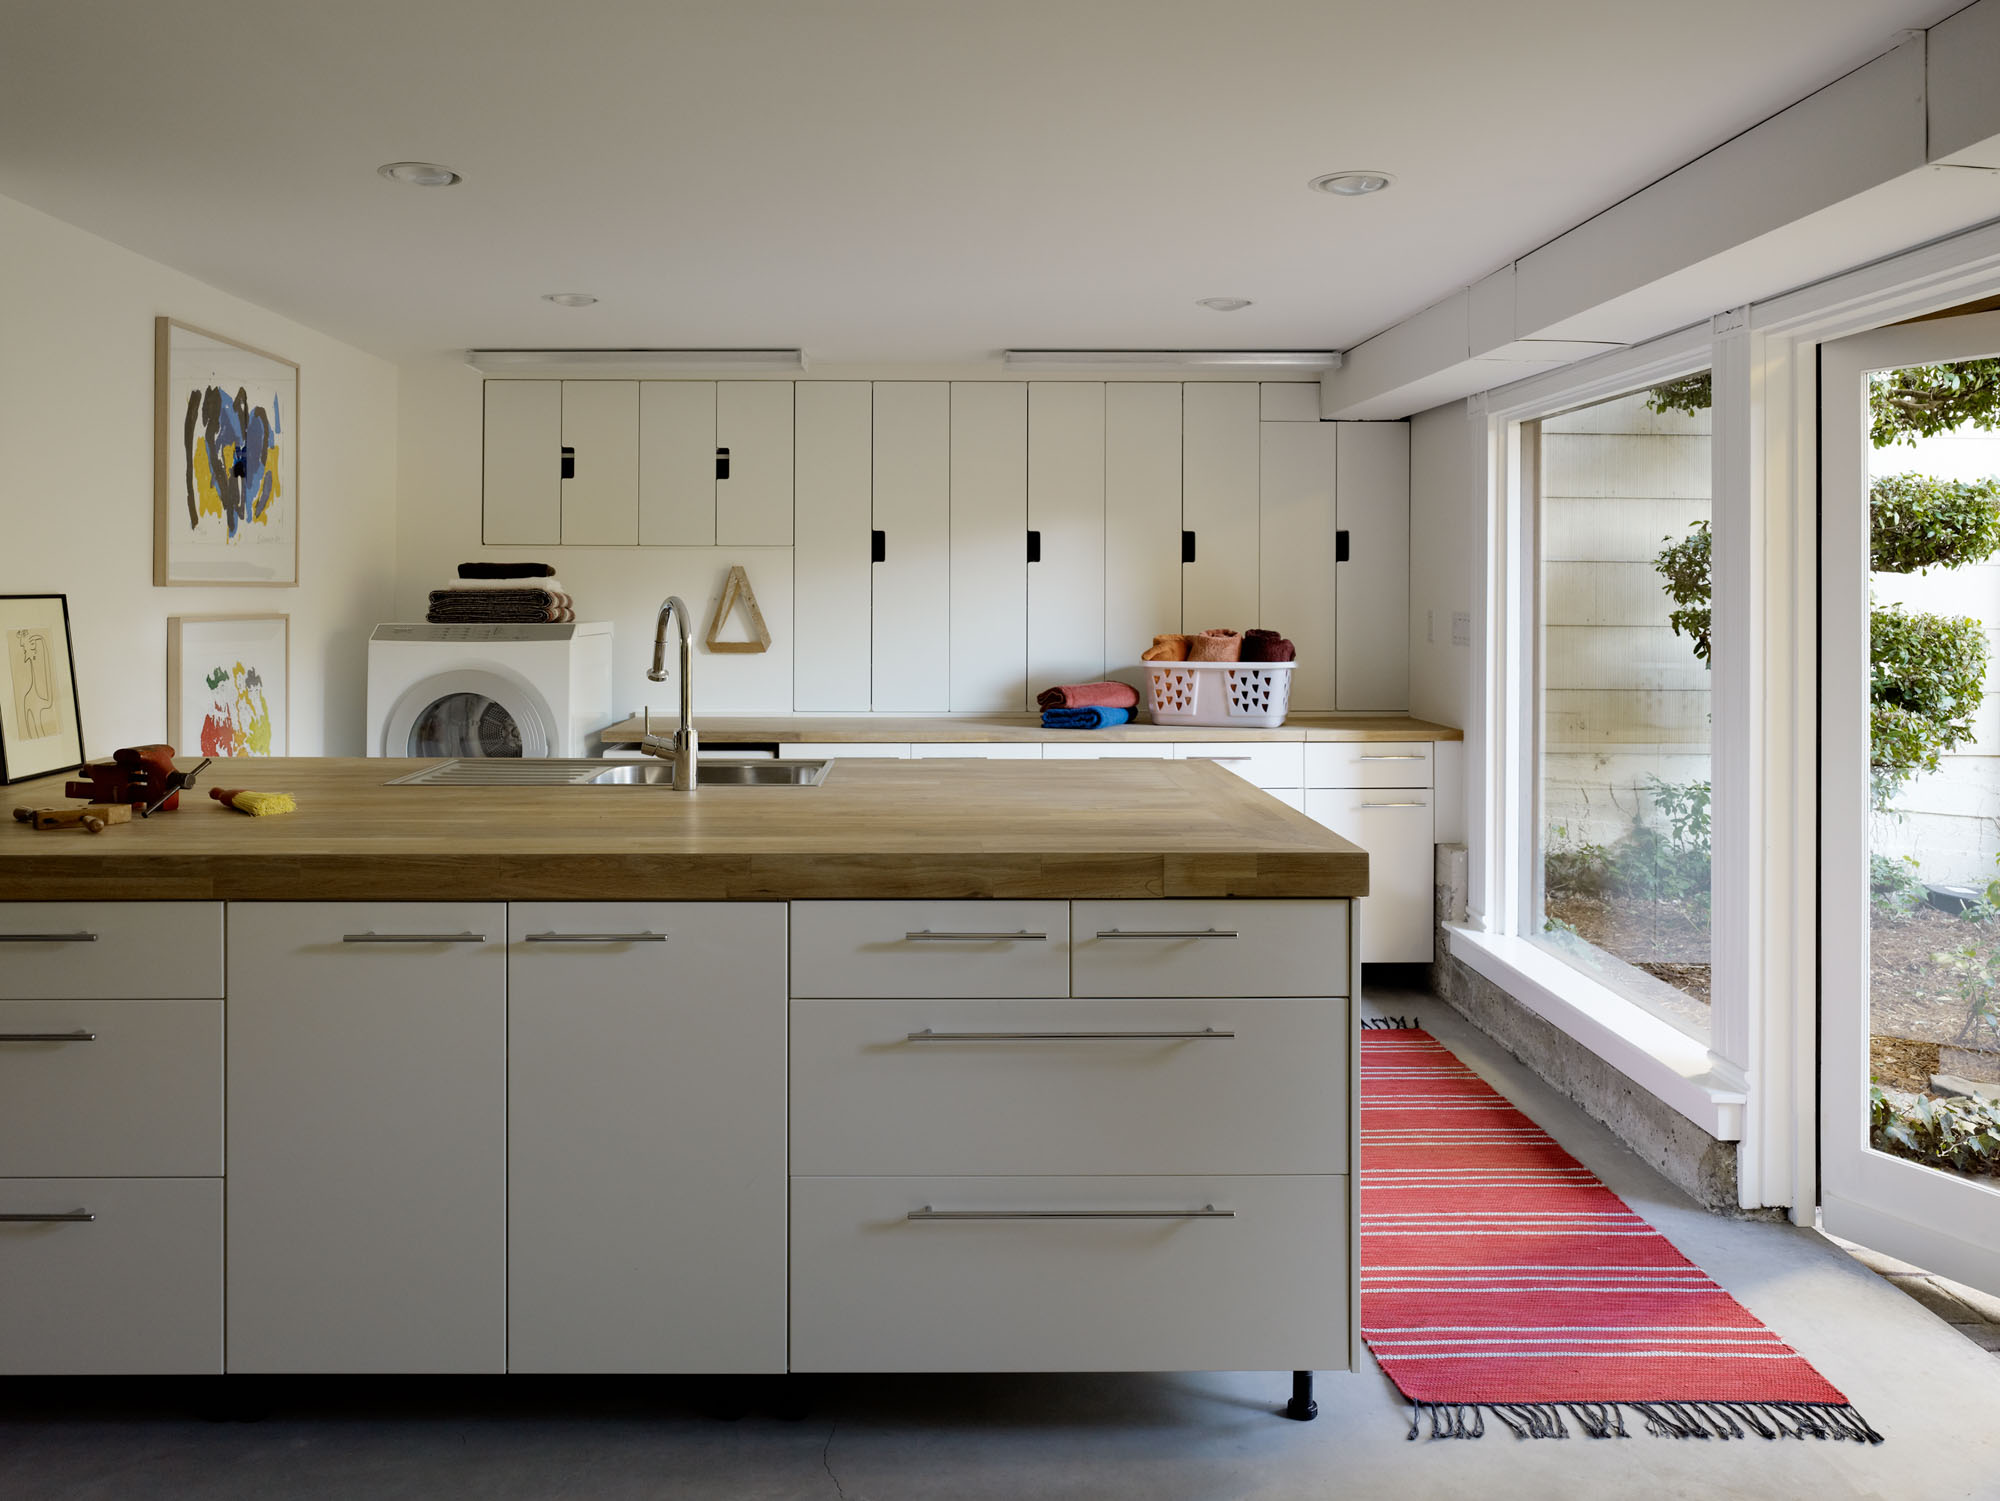 Sleek laundry room with wooden counter top by Martin Young Design